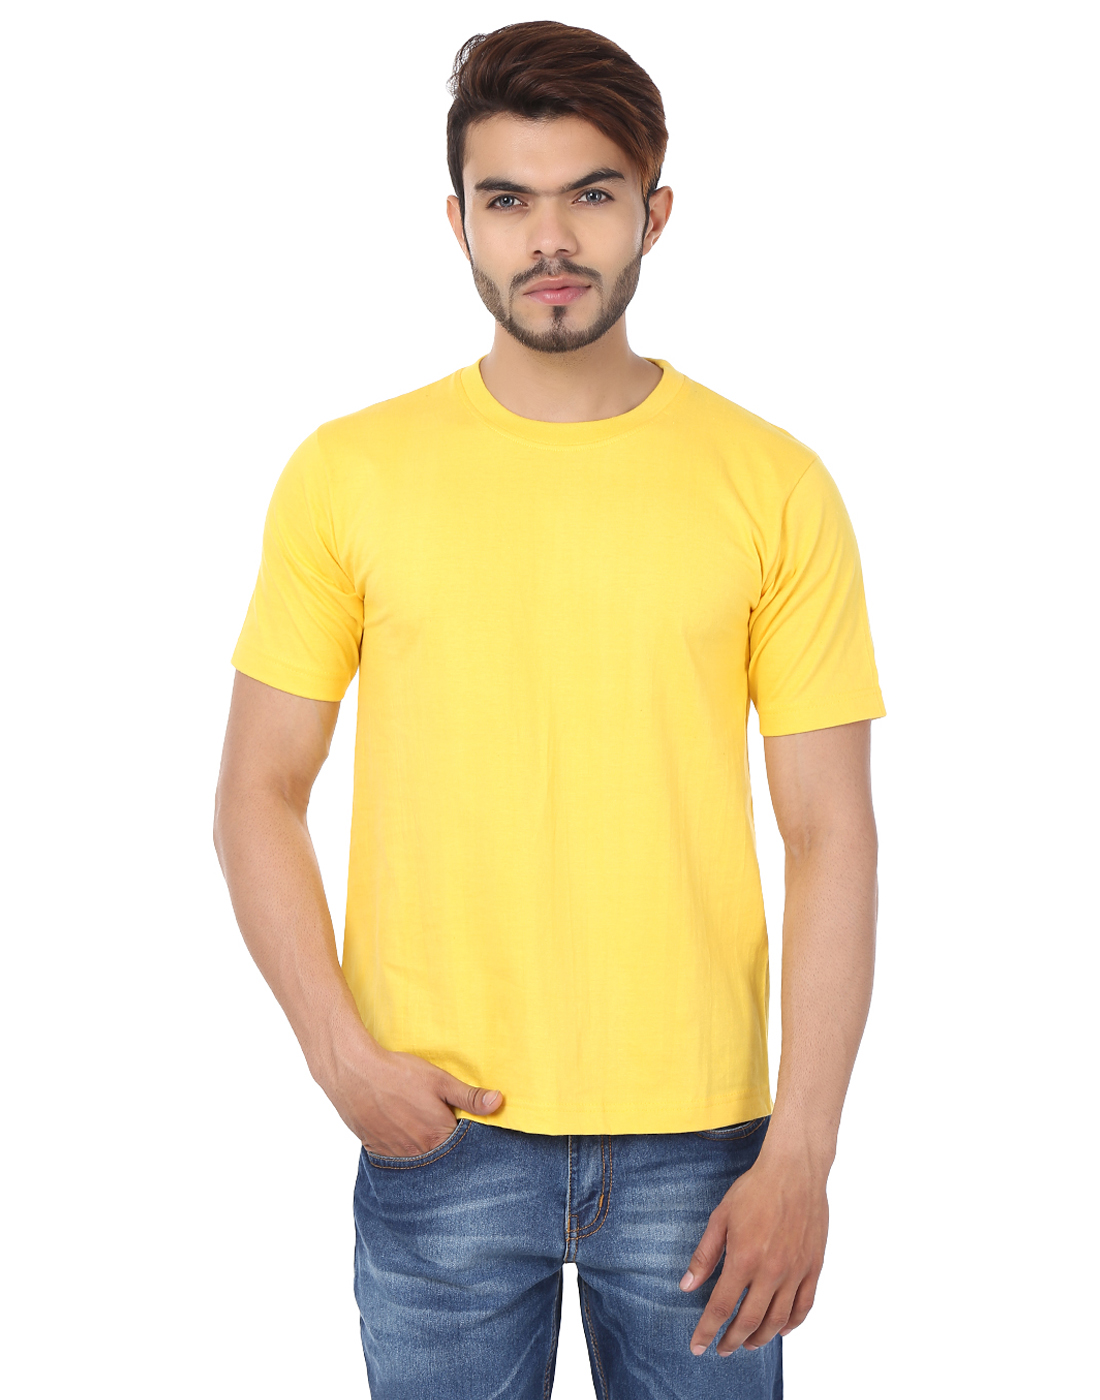 Weardo Men's Plain Yellow Round Neck T-Shirt